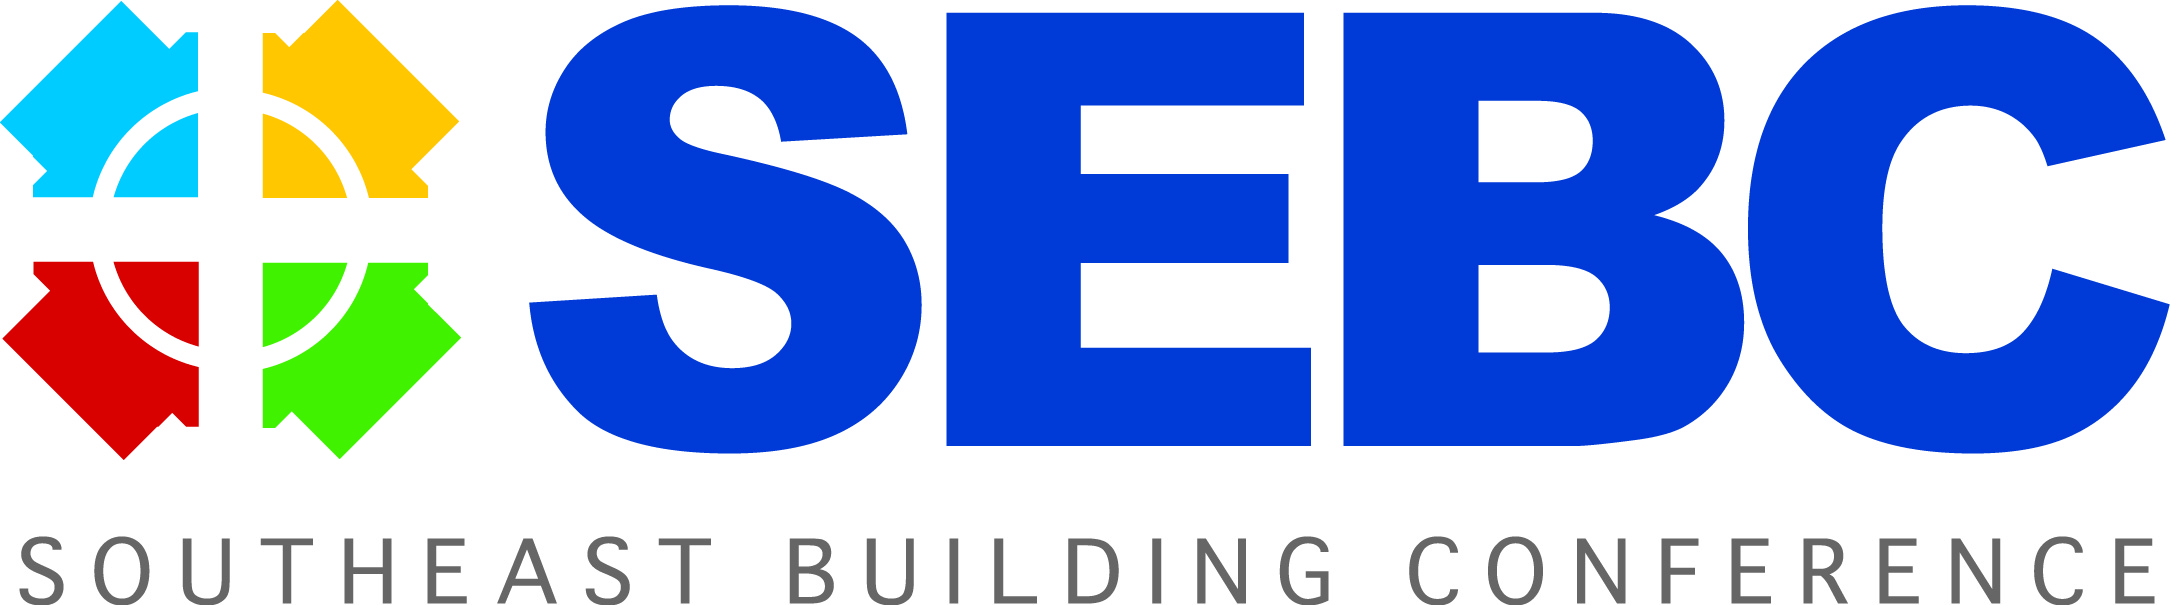 2018 Southeast Building Conference